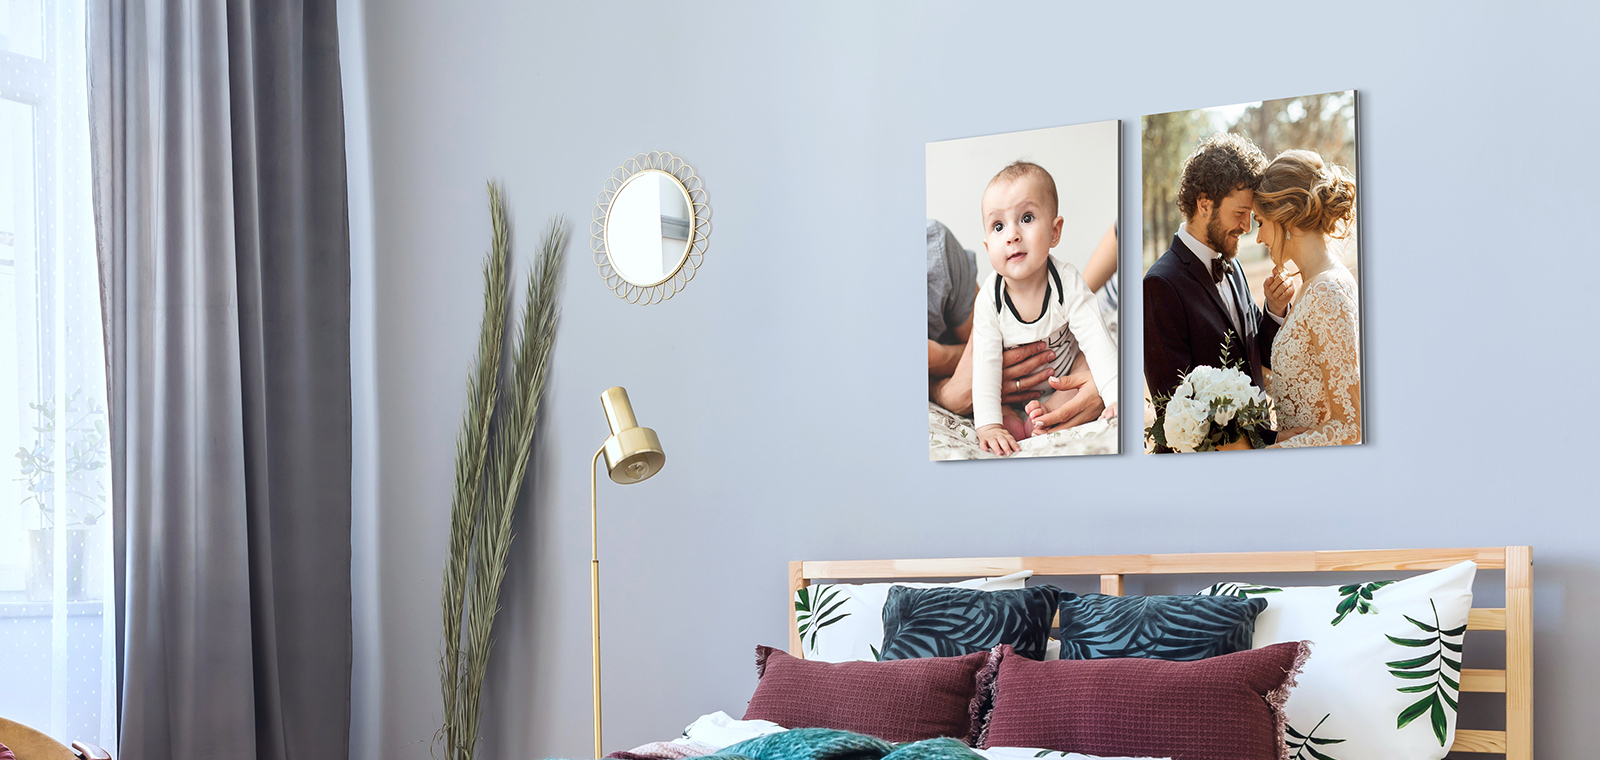 Up to 30 % discount on selected wall decors*